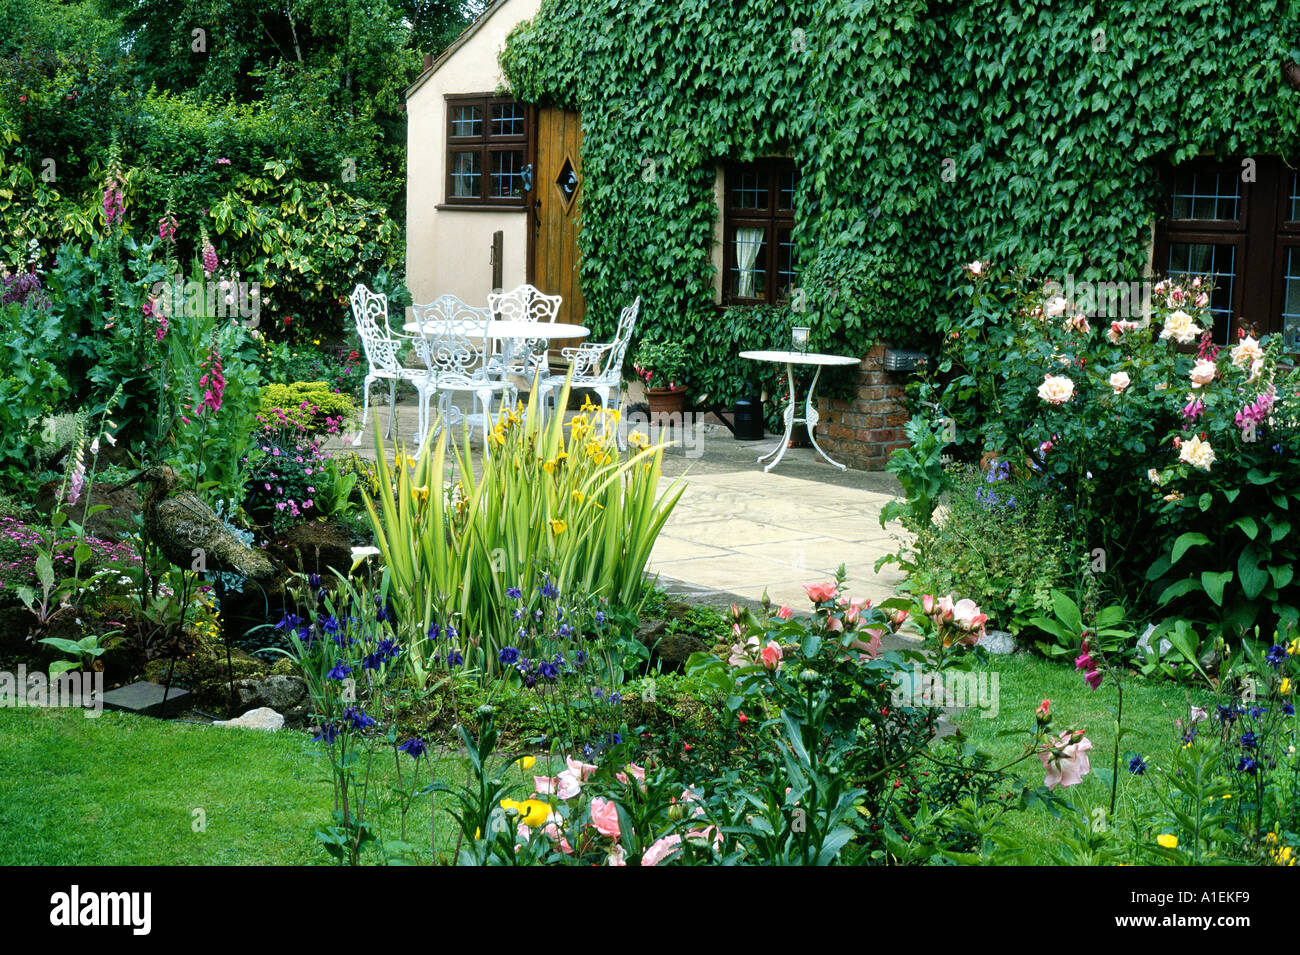 Pond Patio House and small Garden plants flowers table